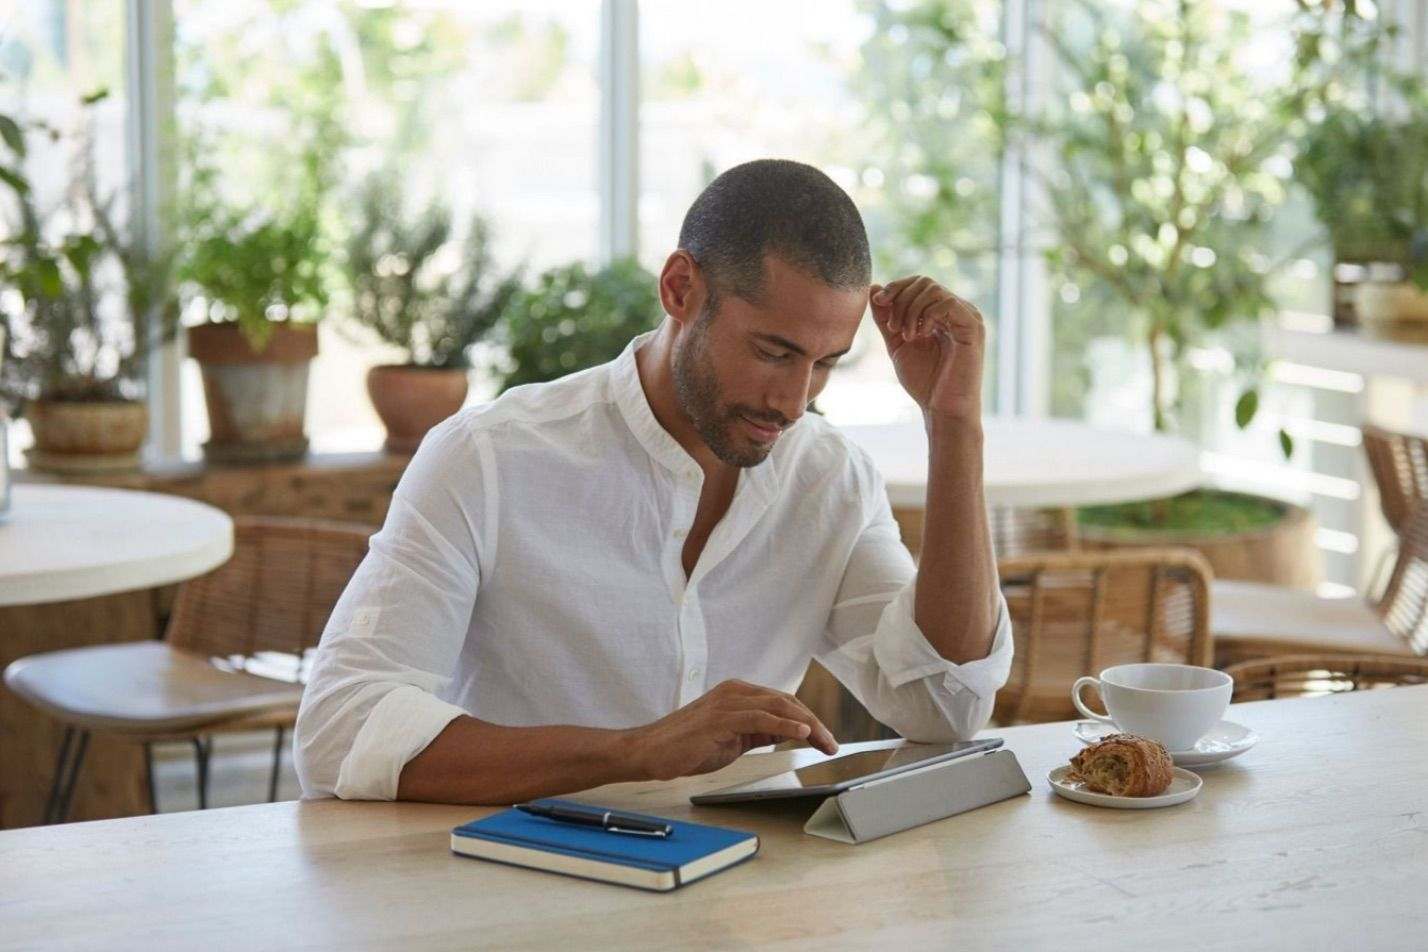 Man on His Tablet While Having Coffee at the Shoreline at Solé Mia Luxury Apartments in North Miami